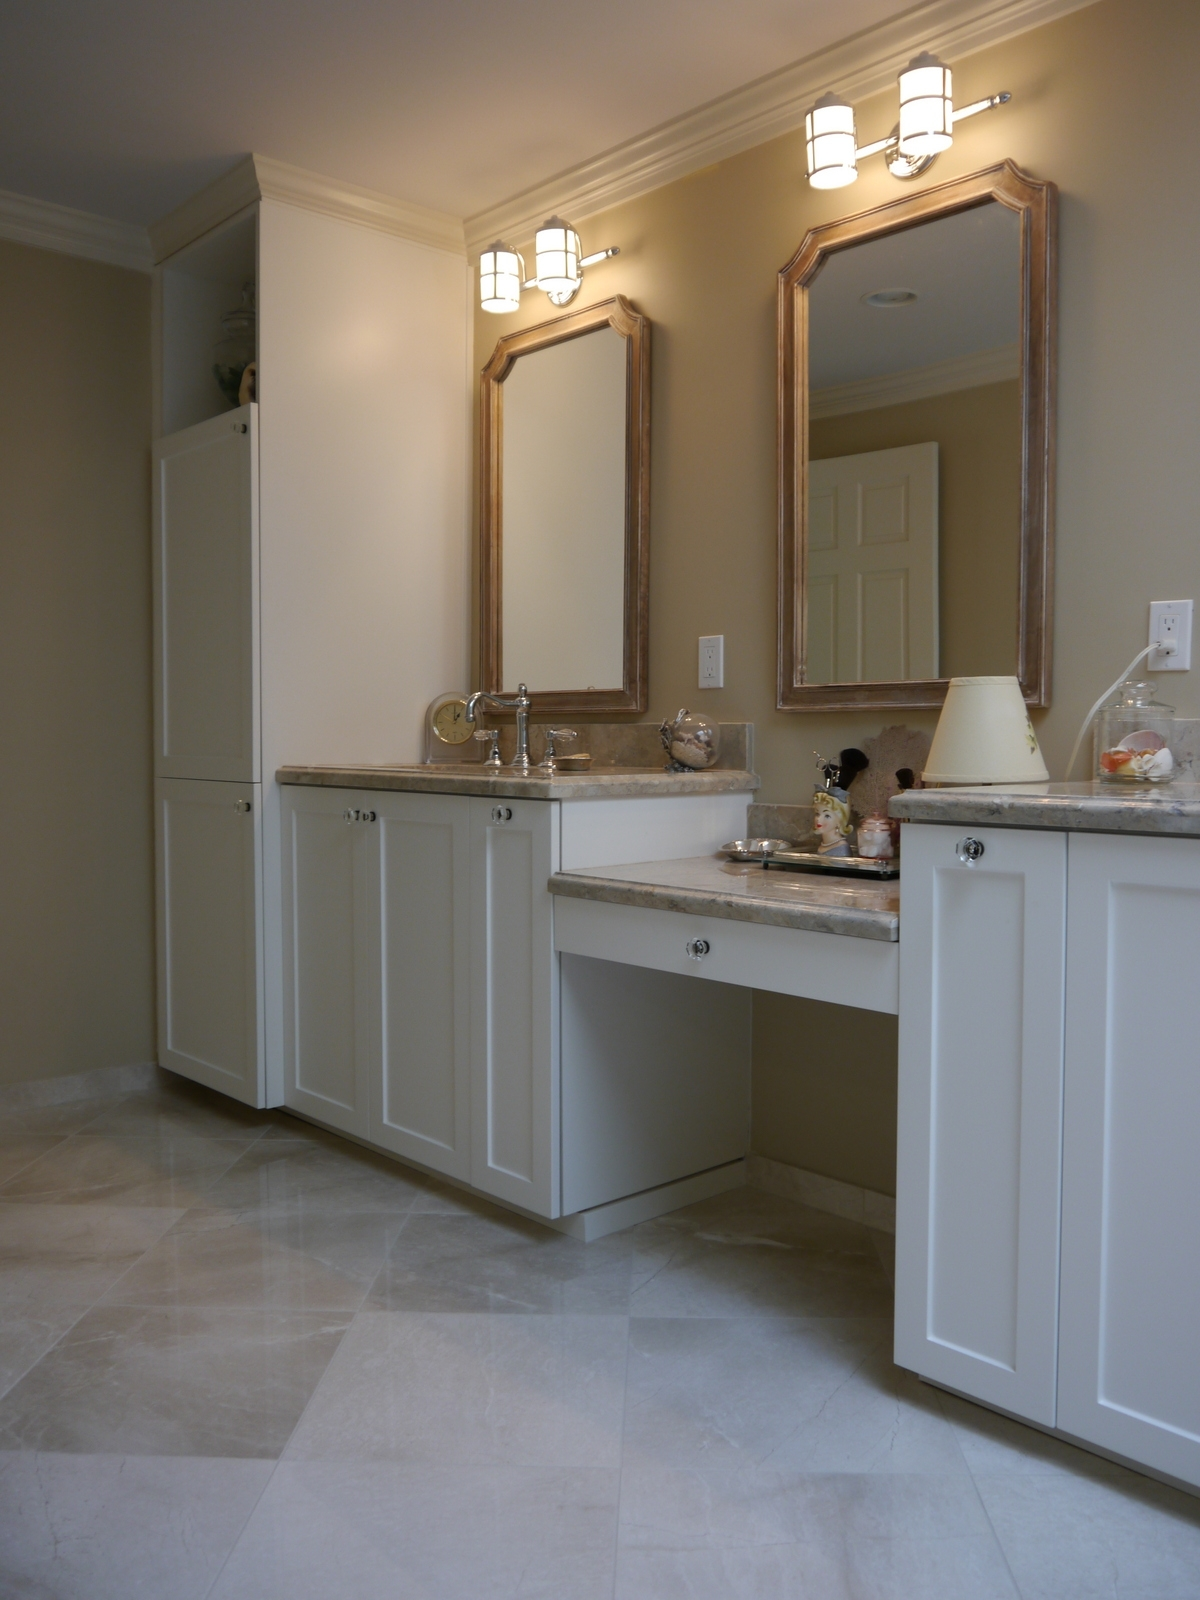 White Satin Foil Cabinet Marble Countertop, Built In Makeup Vanity,  Pull Out Vanity Organizers, And Pottery Barn Mirrors